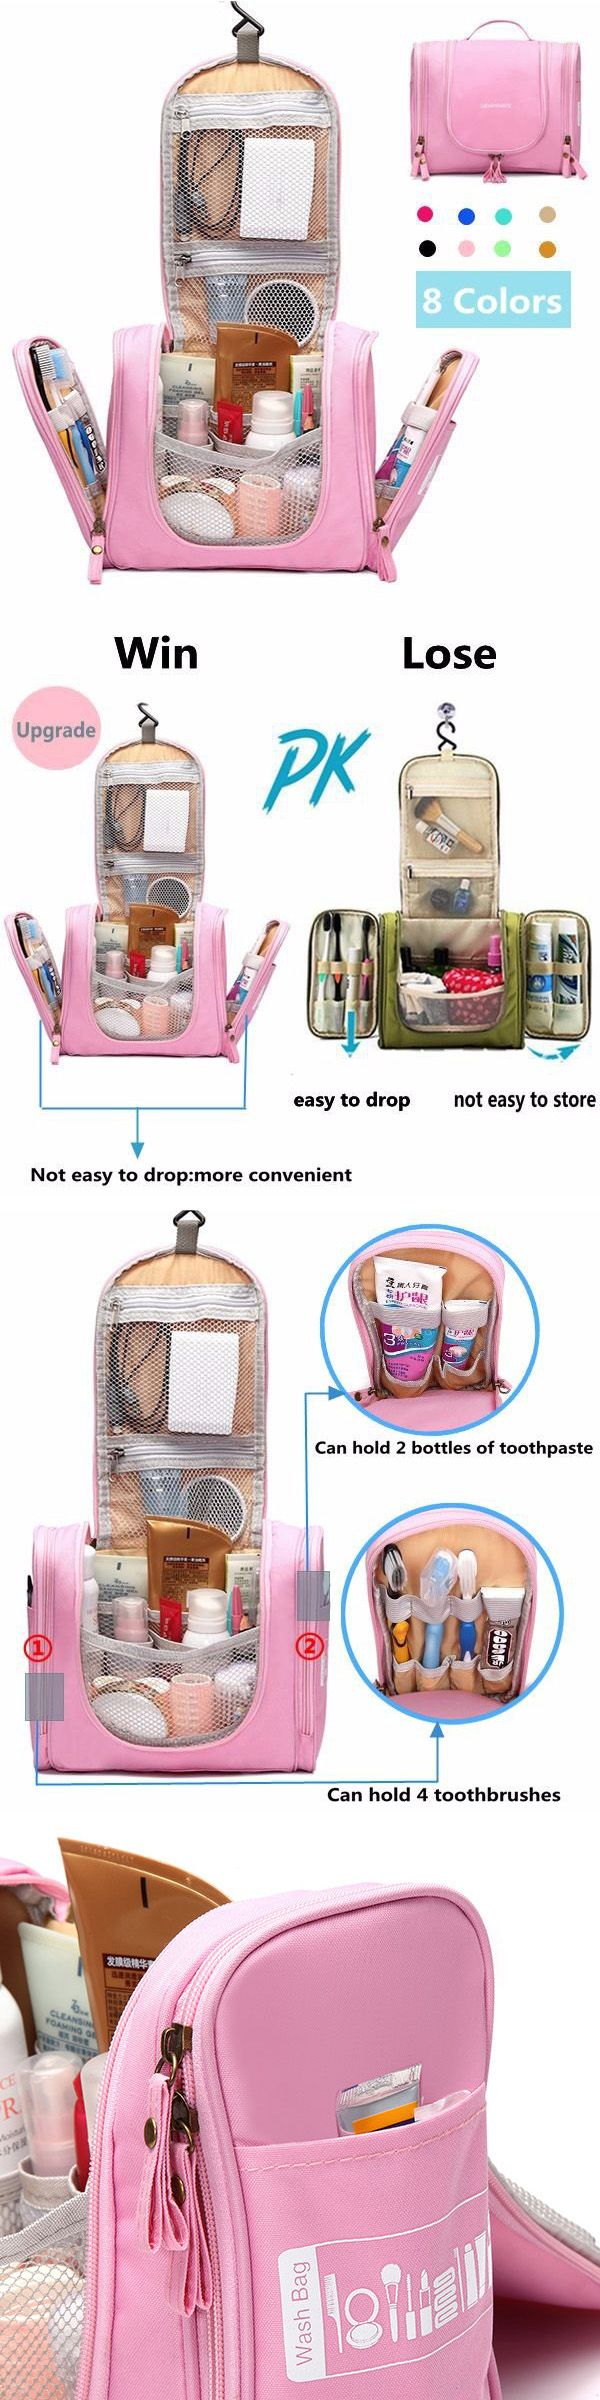 $12.99 Woman Travel Storage Bag ,Polyester Nylon Waterproof Multifunction Storage Bag,Bathroom Bag,Bathroom Outfit,Storage Bag, Cosmetic Bag